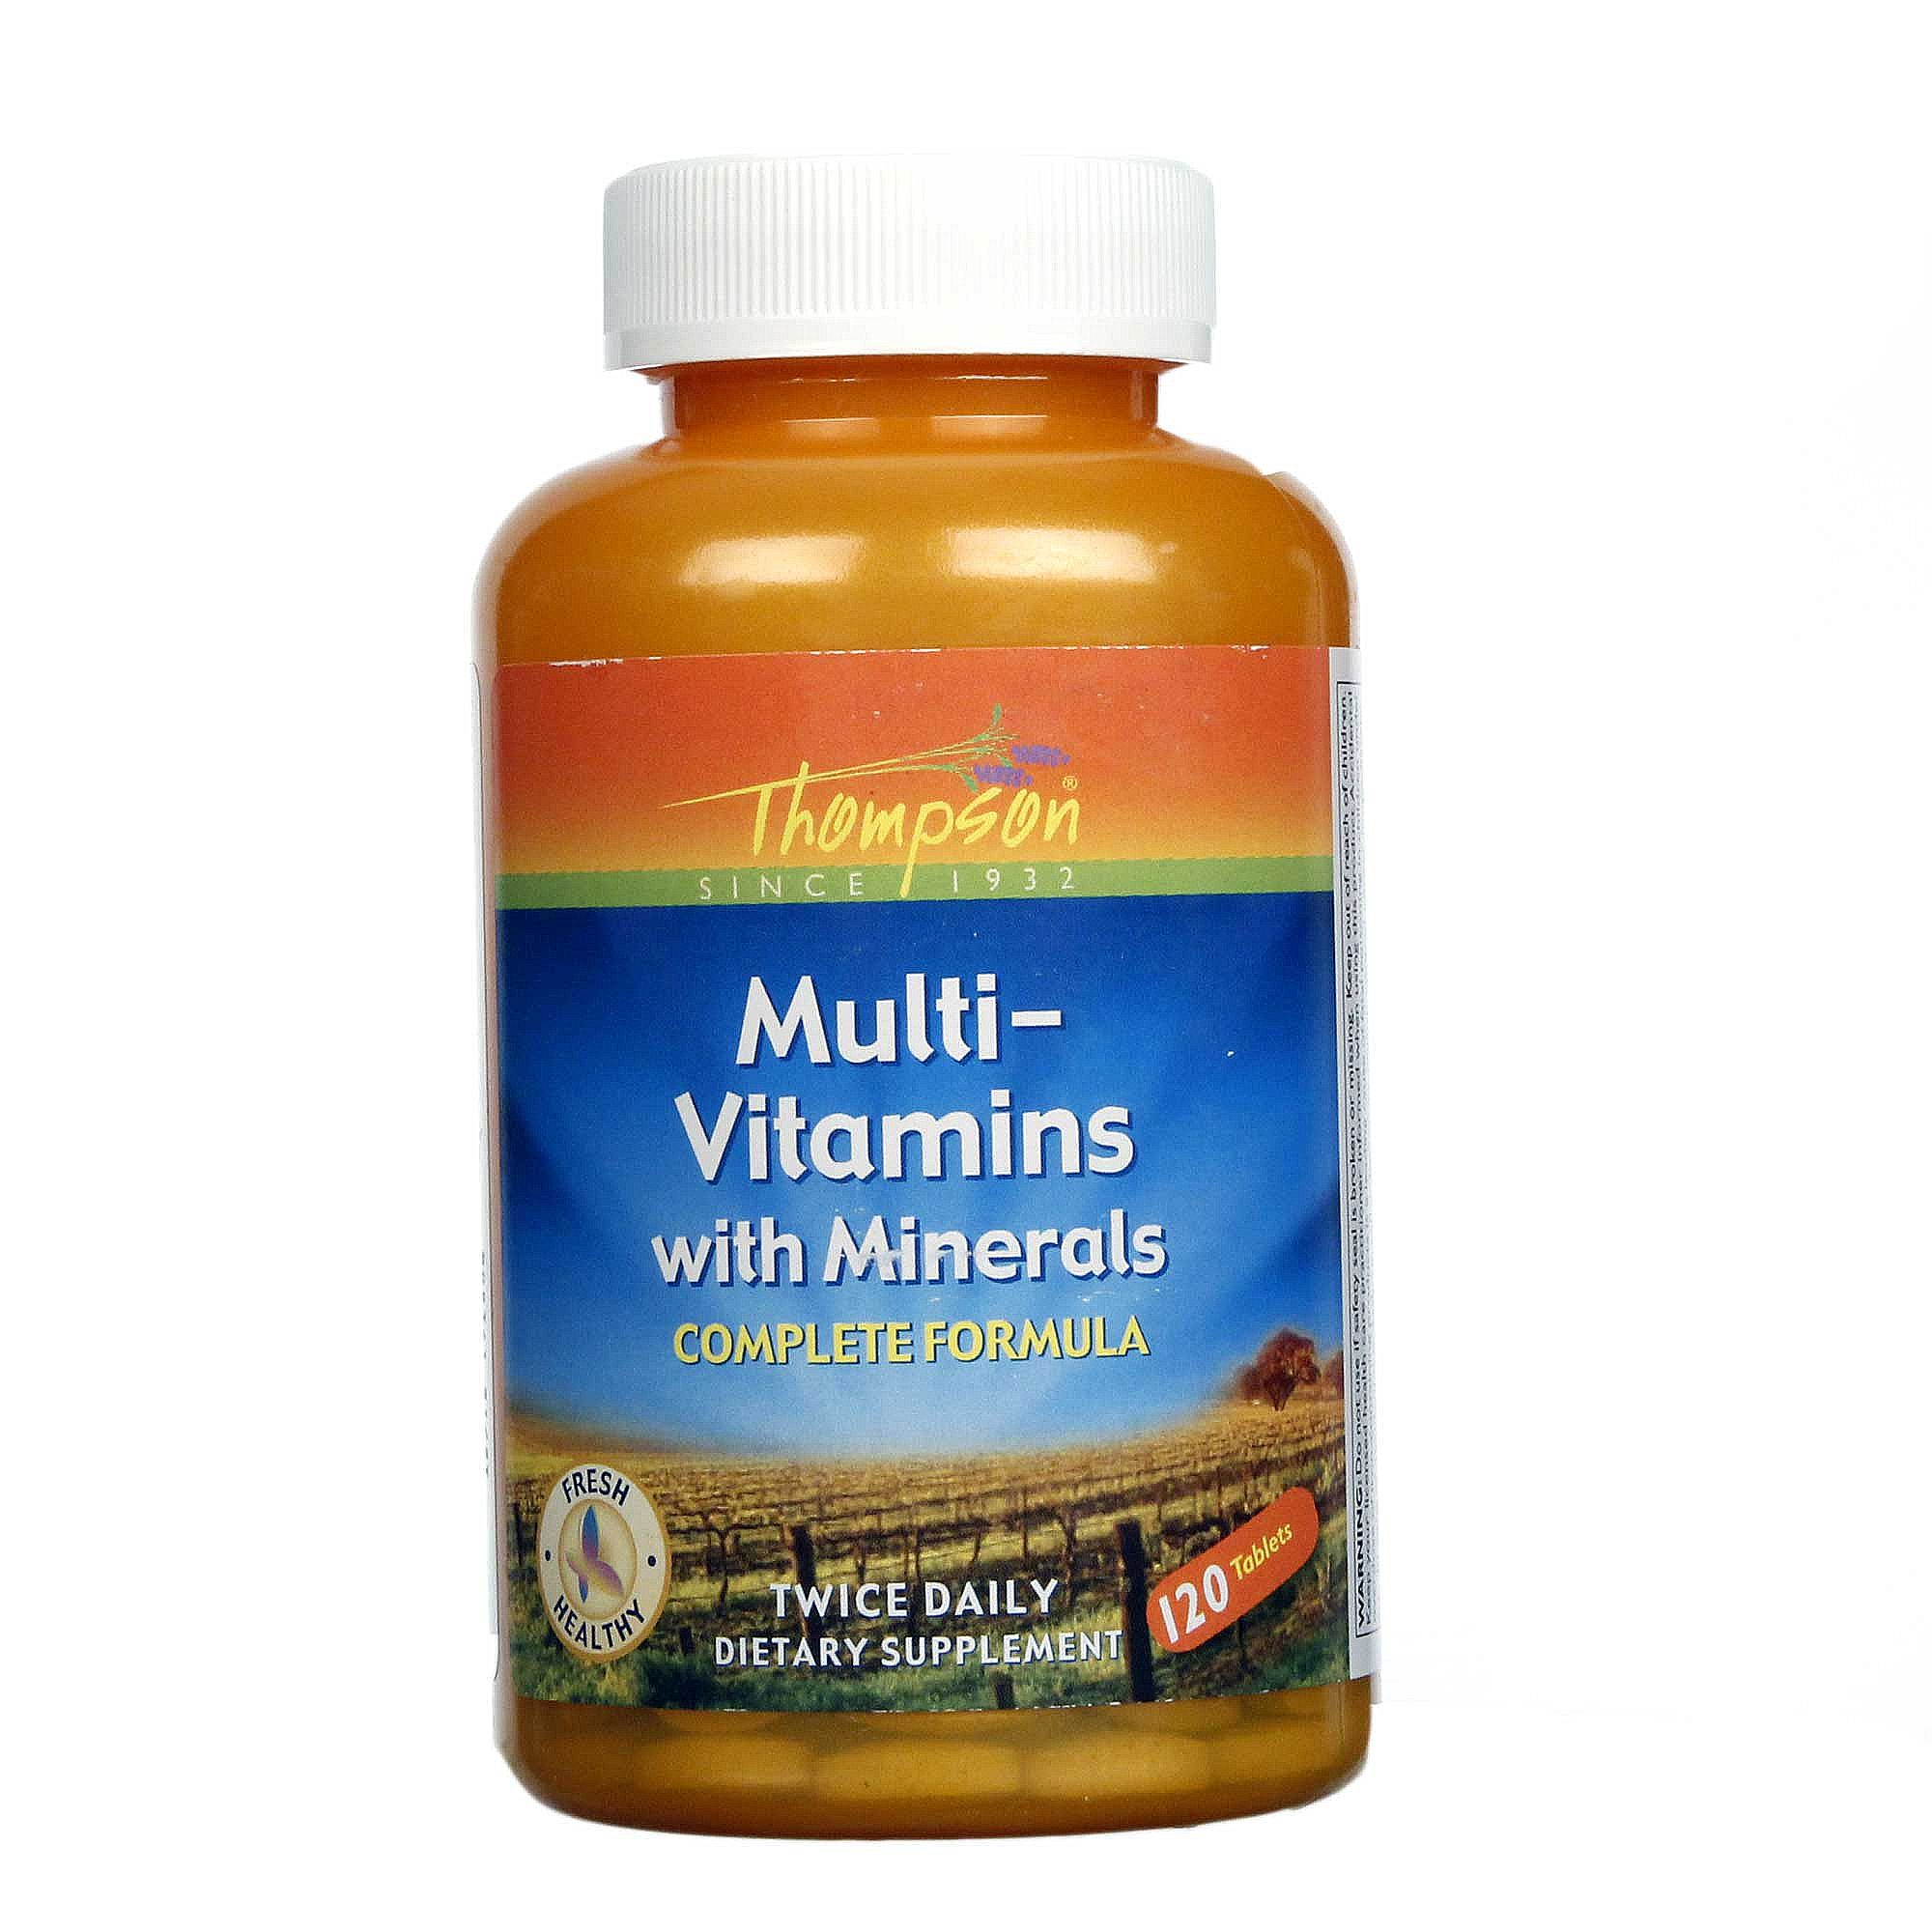 thompson multi vitamins with minerals 120 tablets